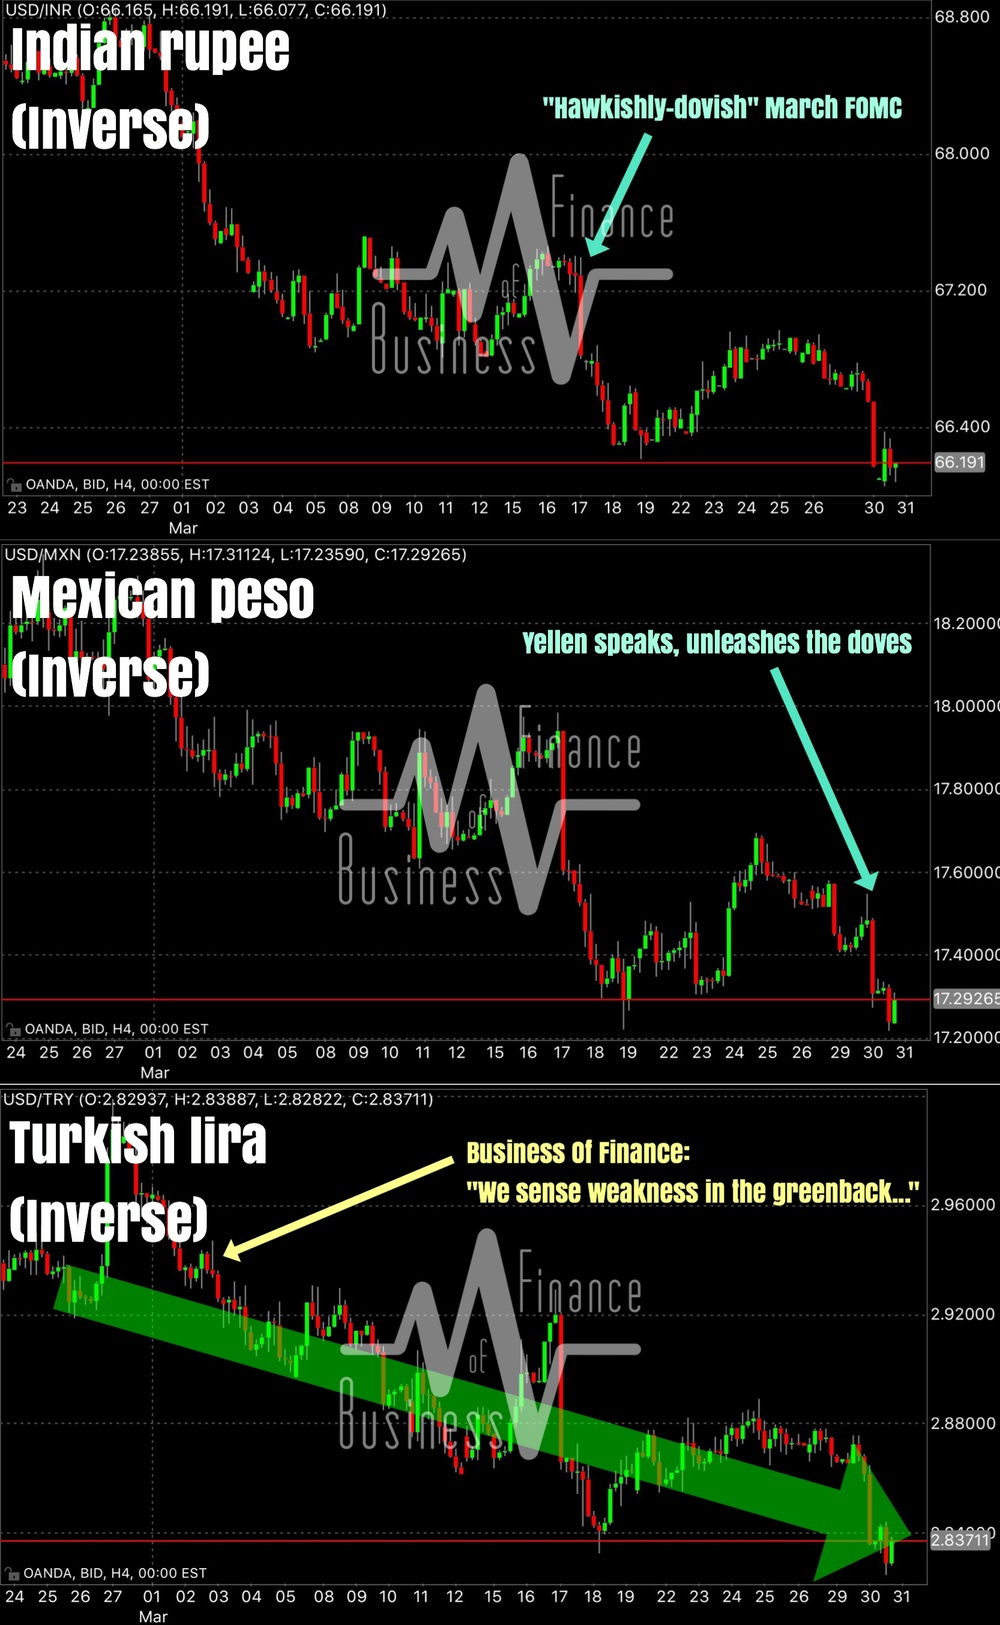 """Bloomberg: ""It's 18 years since emerging market currencies had it this good""    Why, are we no surprised at all. In fact we have a decent short exposure on the U.S. dollar against EM currencies as we speak.    Regular followers will know that we've been calling for dollar weakness and EMFX strength since the start of March. We have seen exactly that in a combo of factors not limited to what we term a ""hawkishly-dovish"" Fed.""    Business Of Finance on Facebook, 30 March 2016"